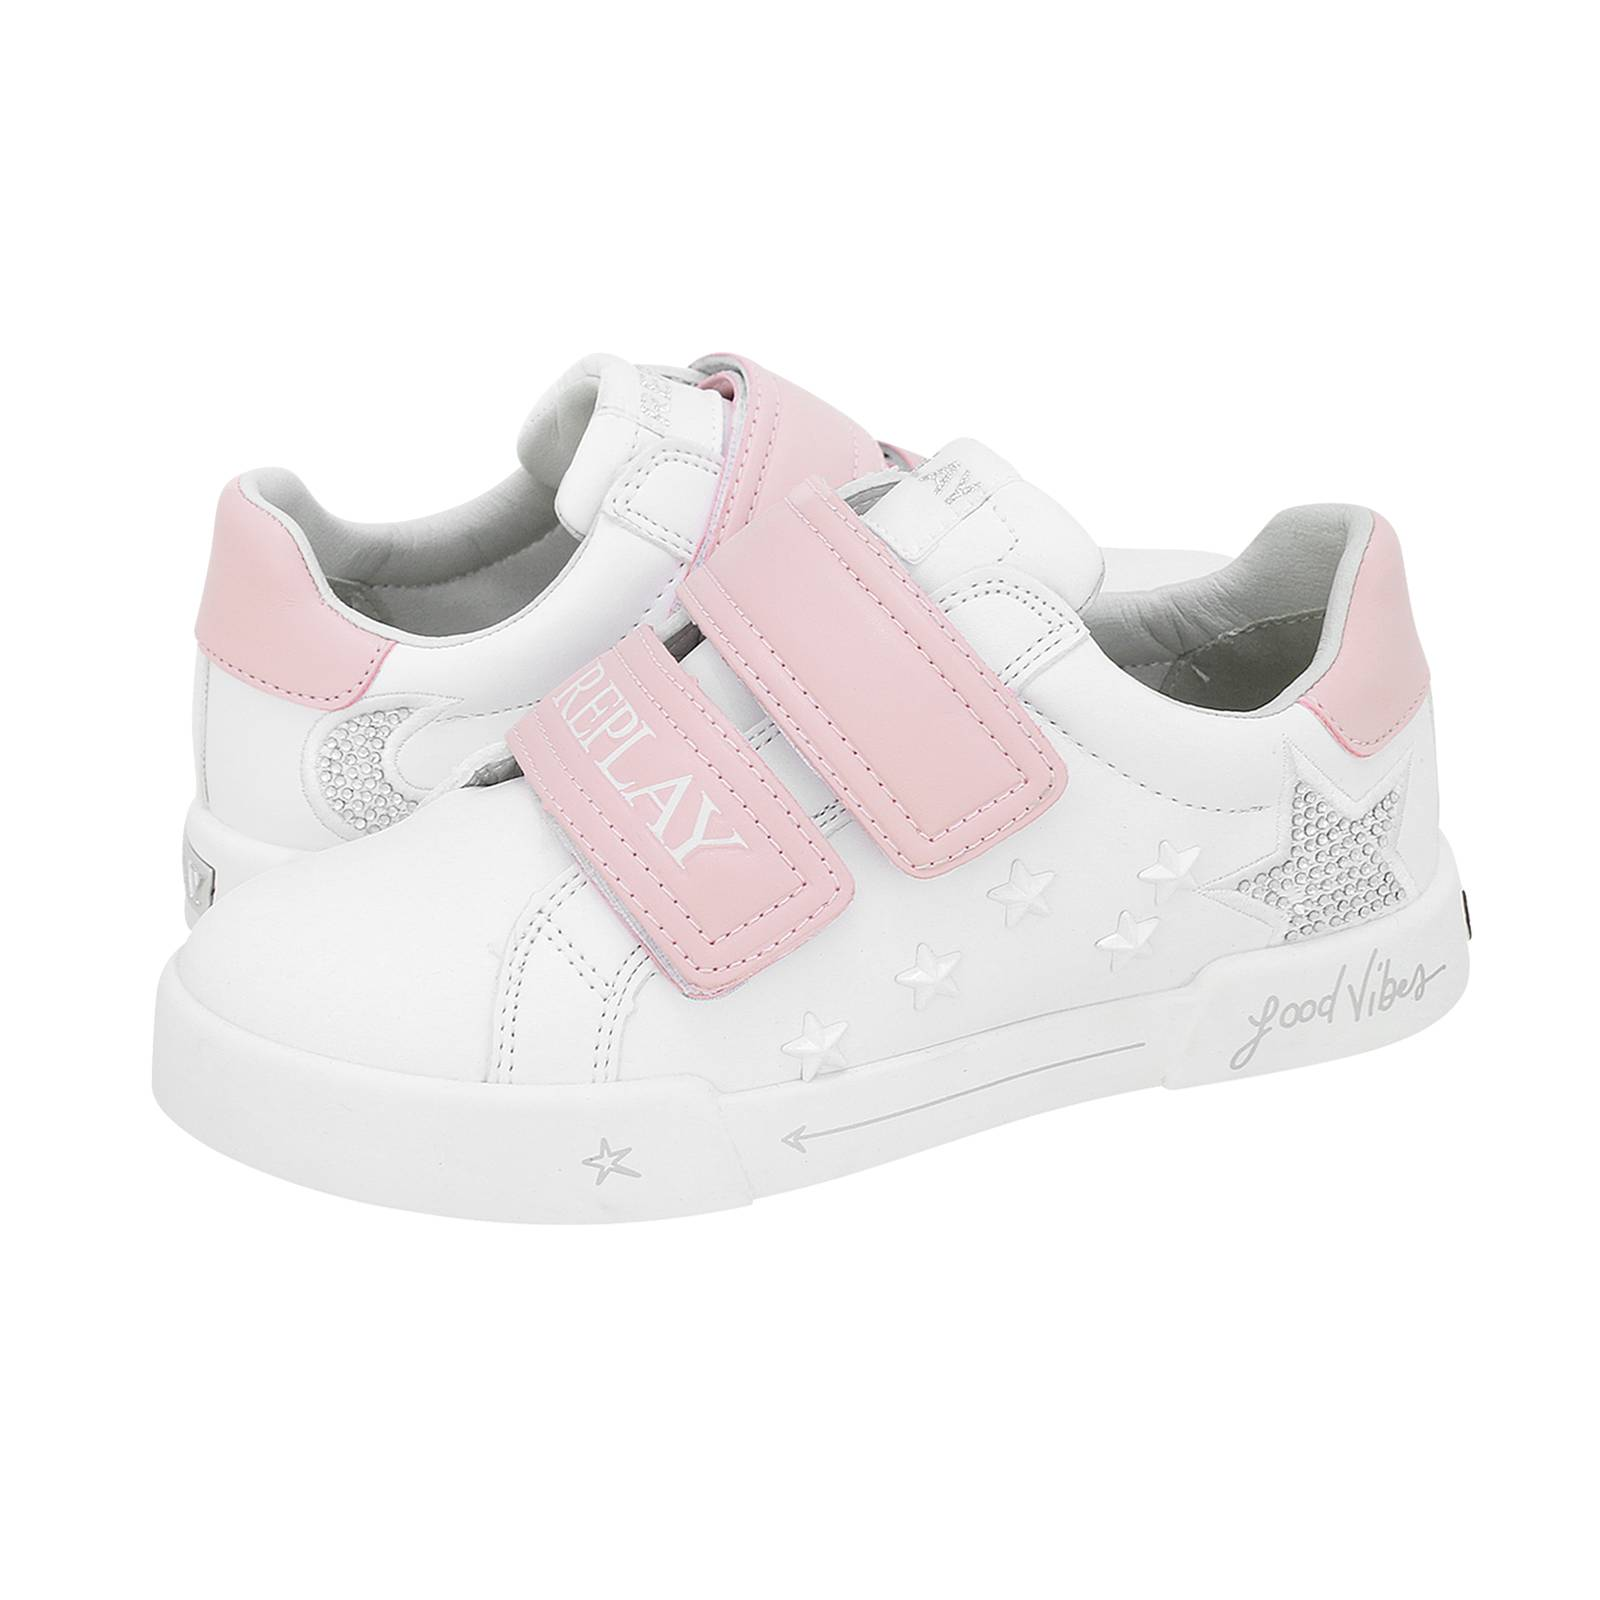 Boyle - Replay Casual kids' shoes made